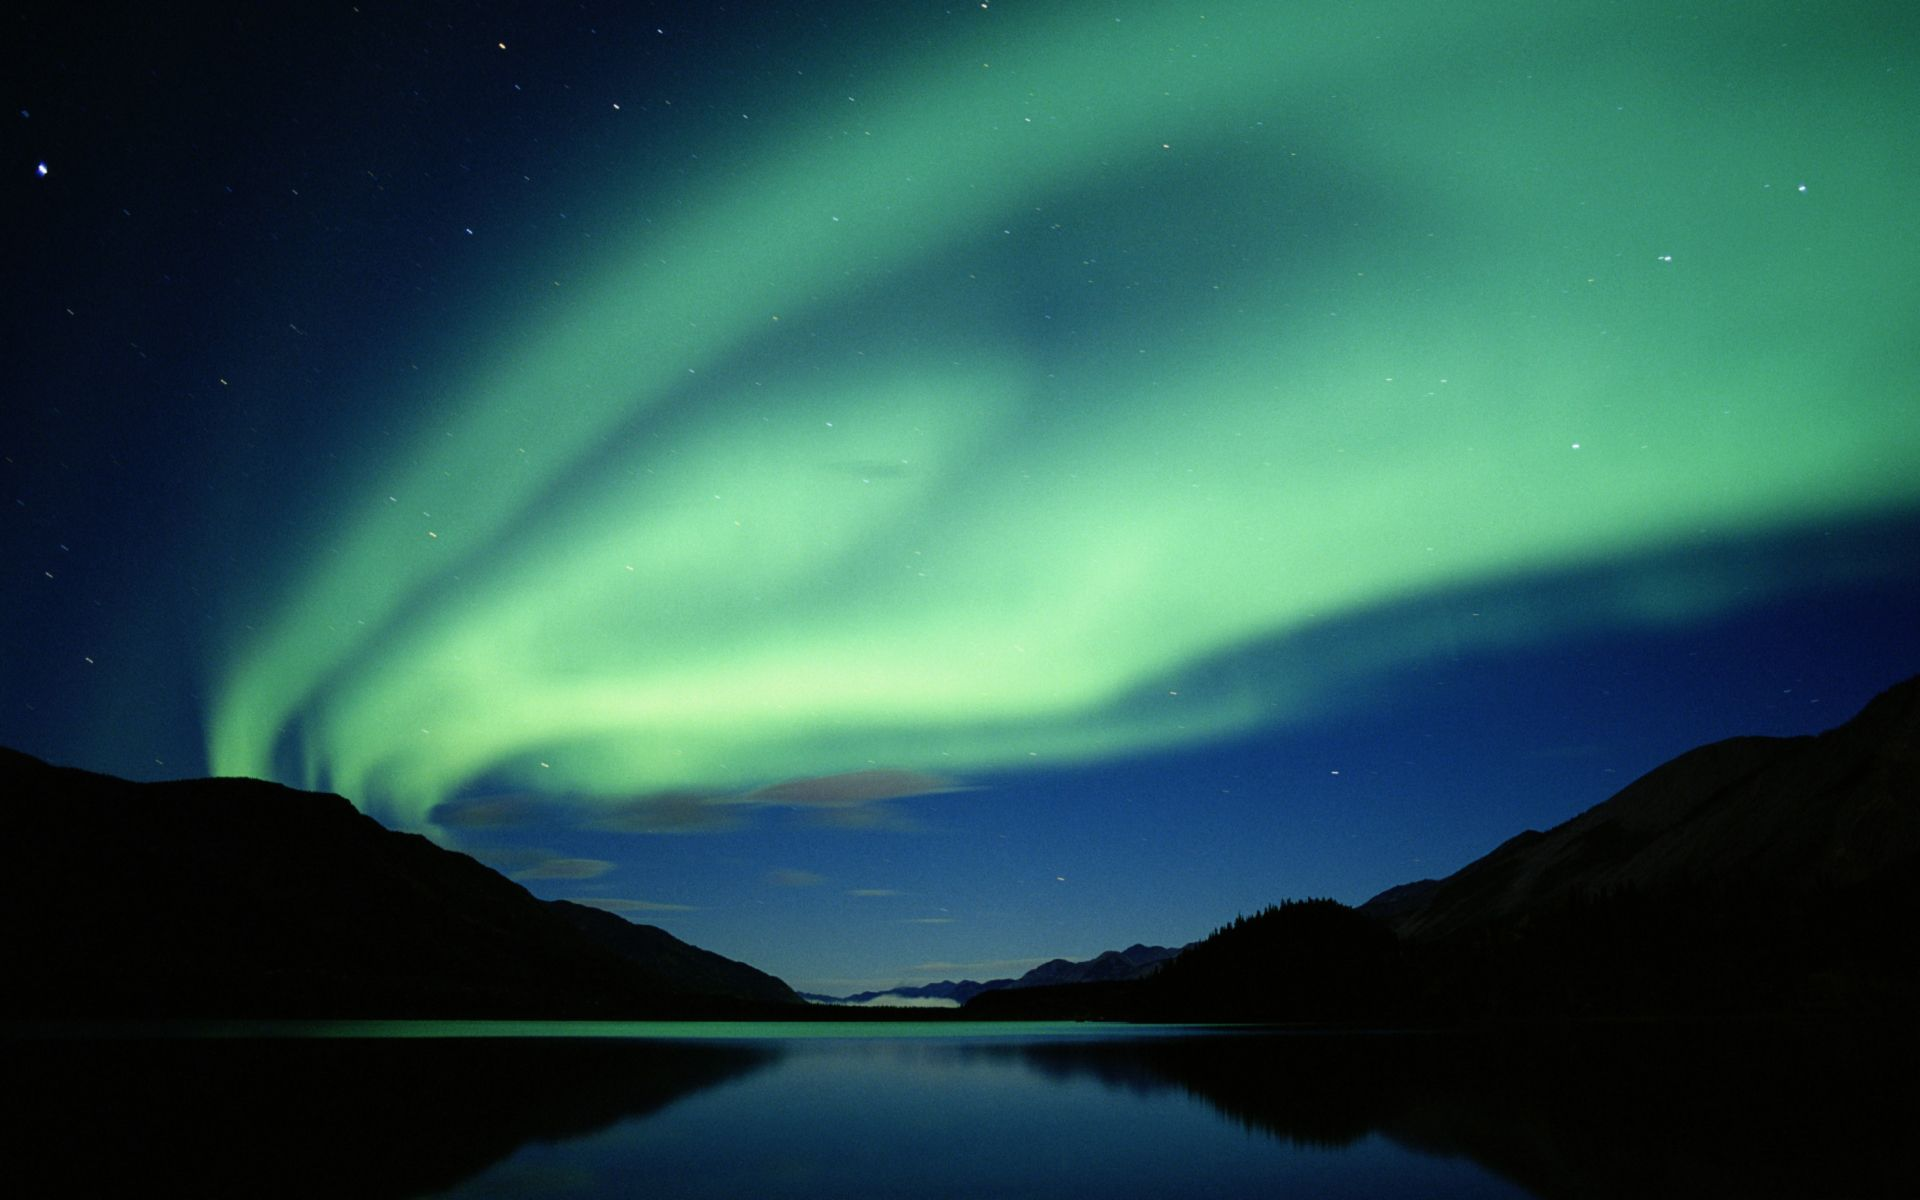 http://vistawallpapers.files.wordpress.com/2007/03/vista-wallpaper-aurora-at-night.jpg